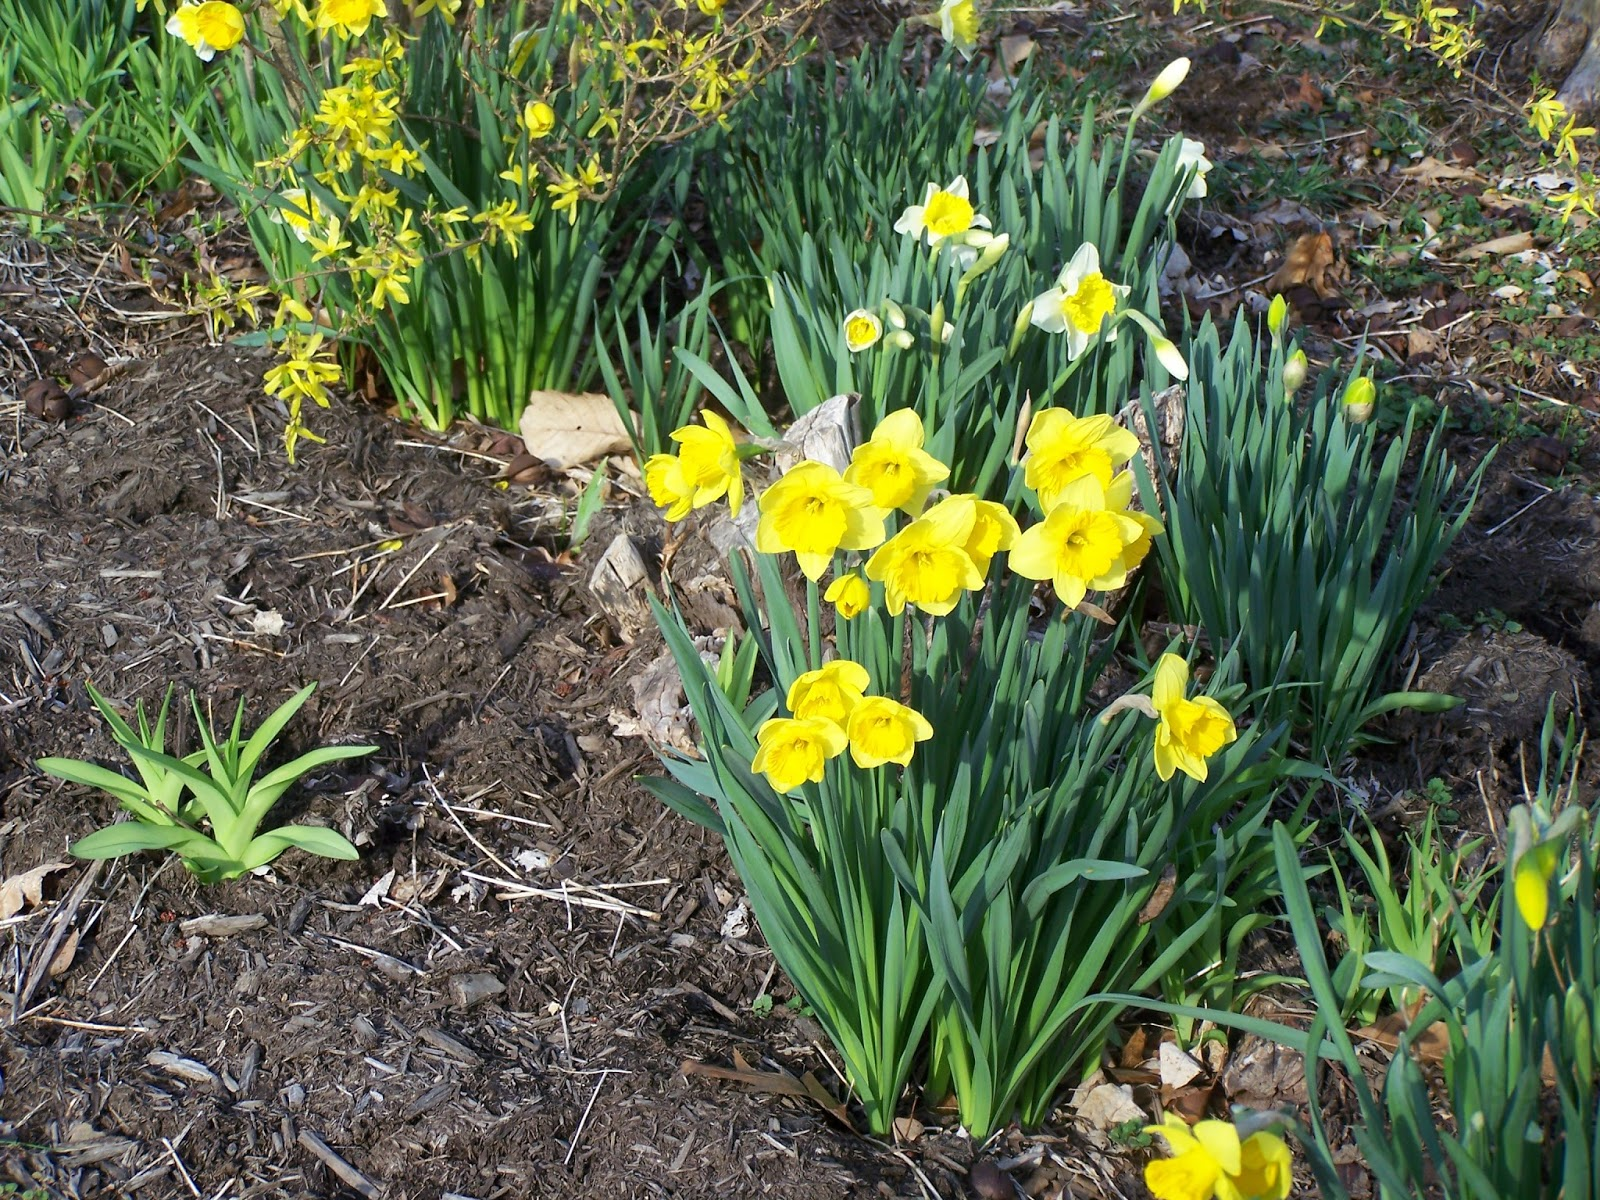 Granny sues news and reviews thinking of spring and daffodils i noticed in the gardens yesterday that the green tips of daffodils were beginning to show through the mulch last year by this time they were up so far izmirmasajfo